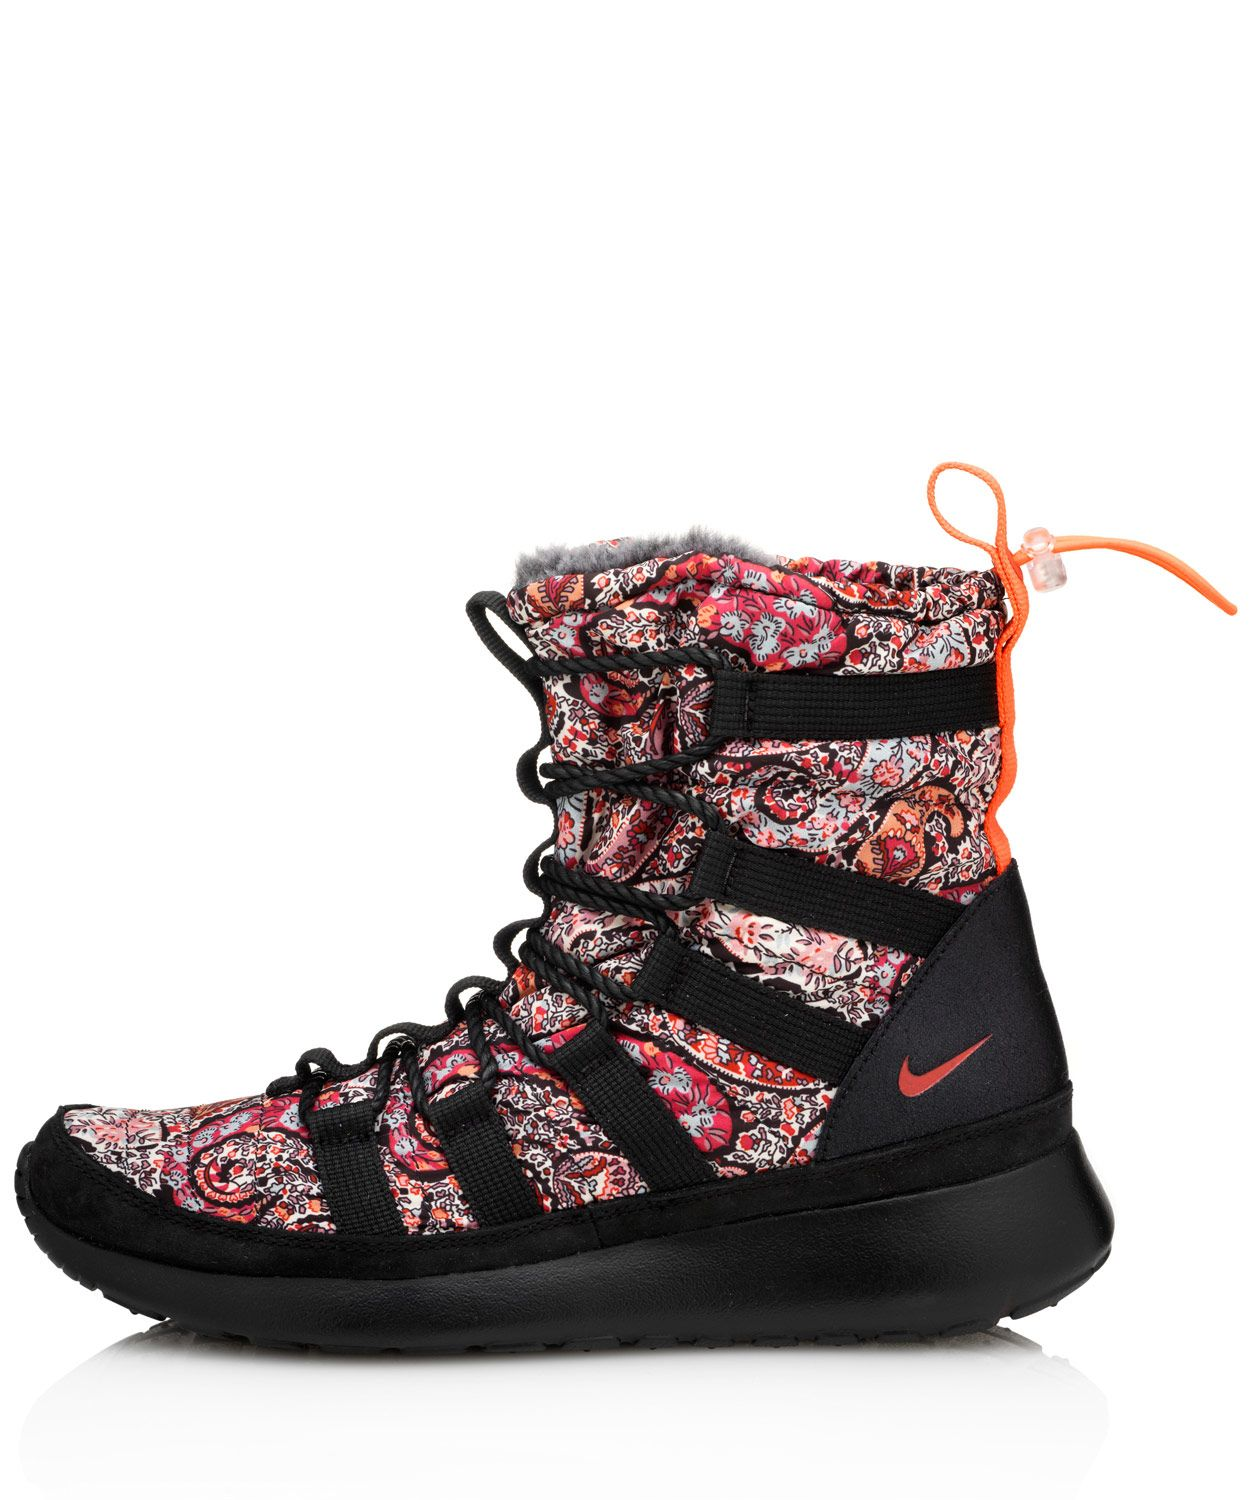 Or these I m not fussy XD Nike X Liberty Black Bourton